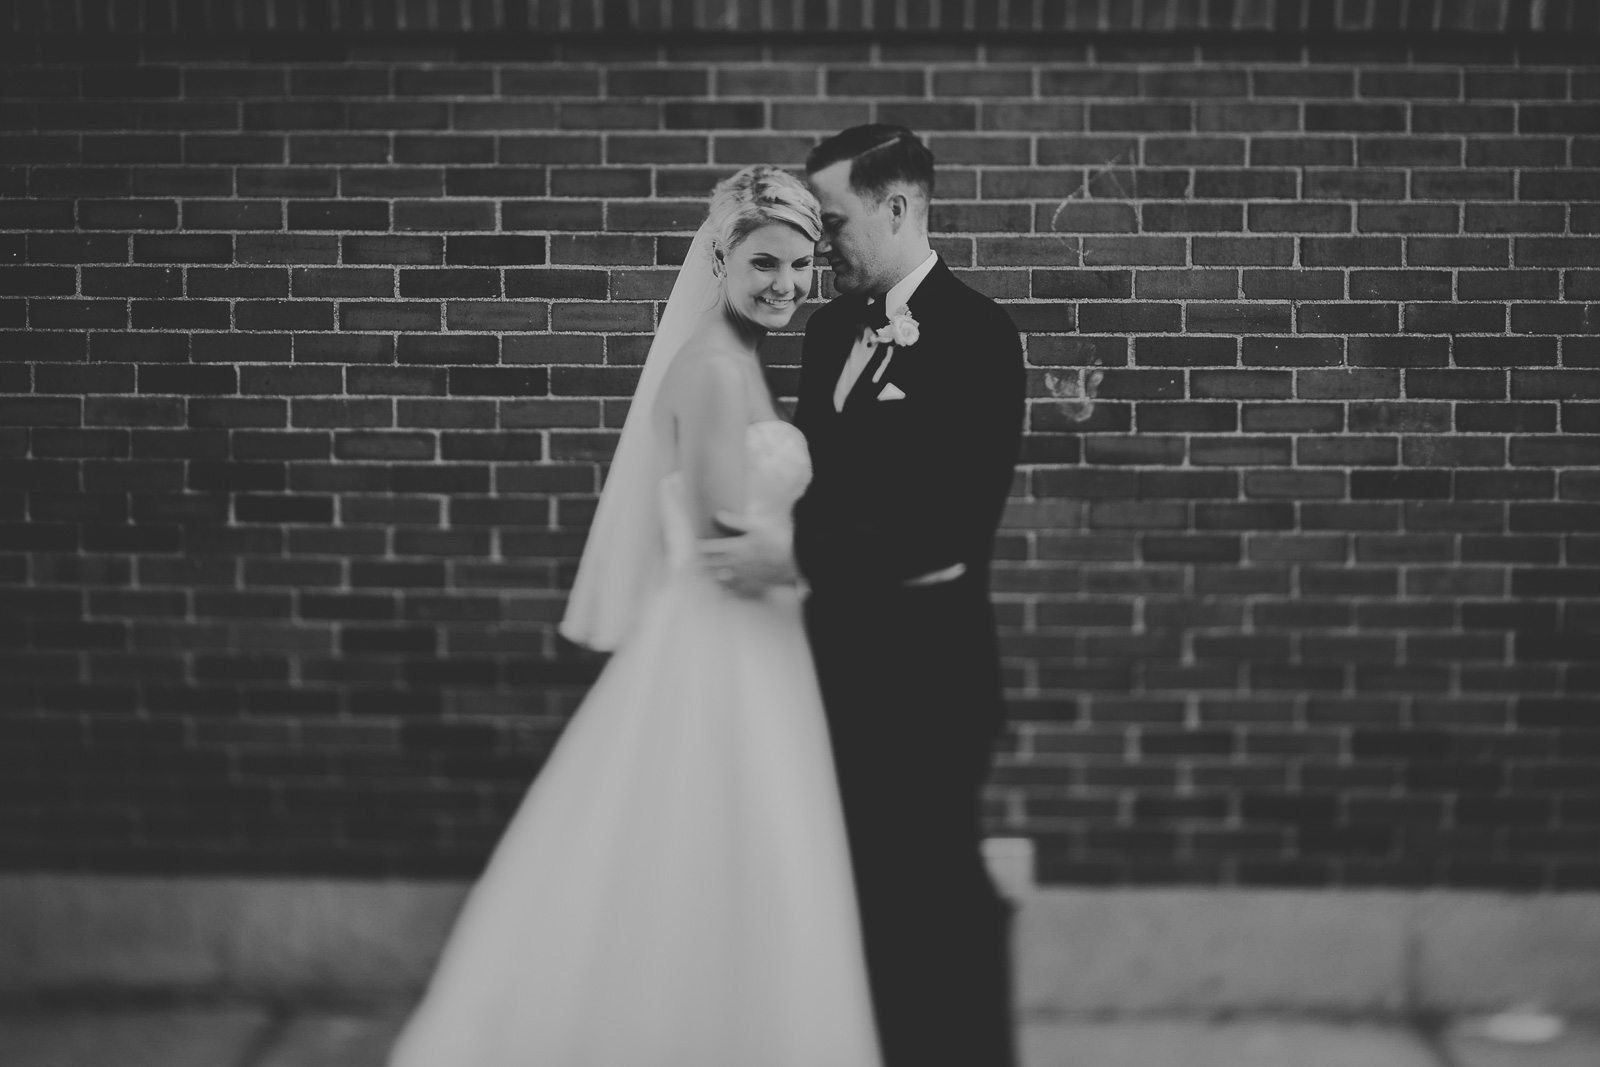 46 chicago wedding photographers in black and white